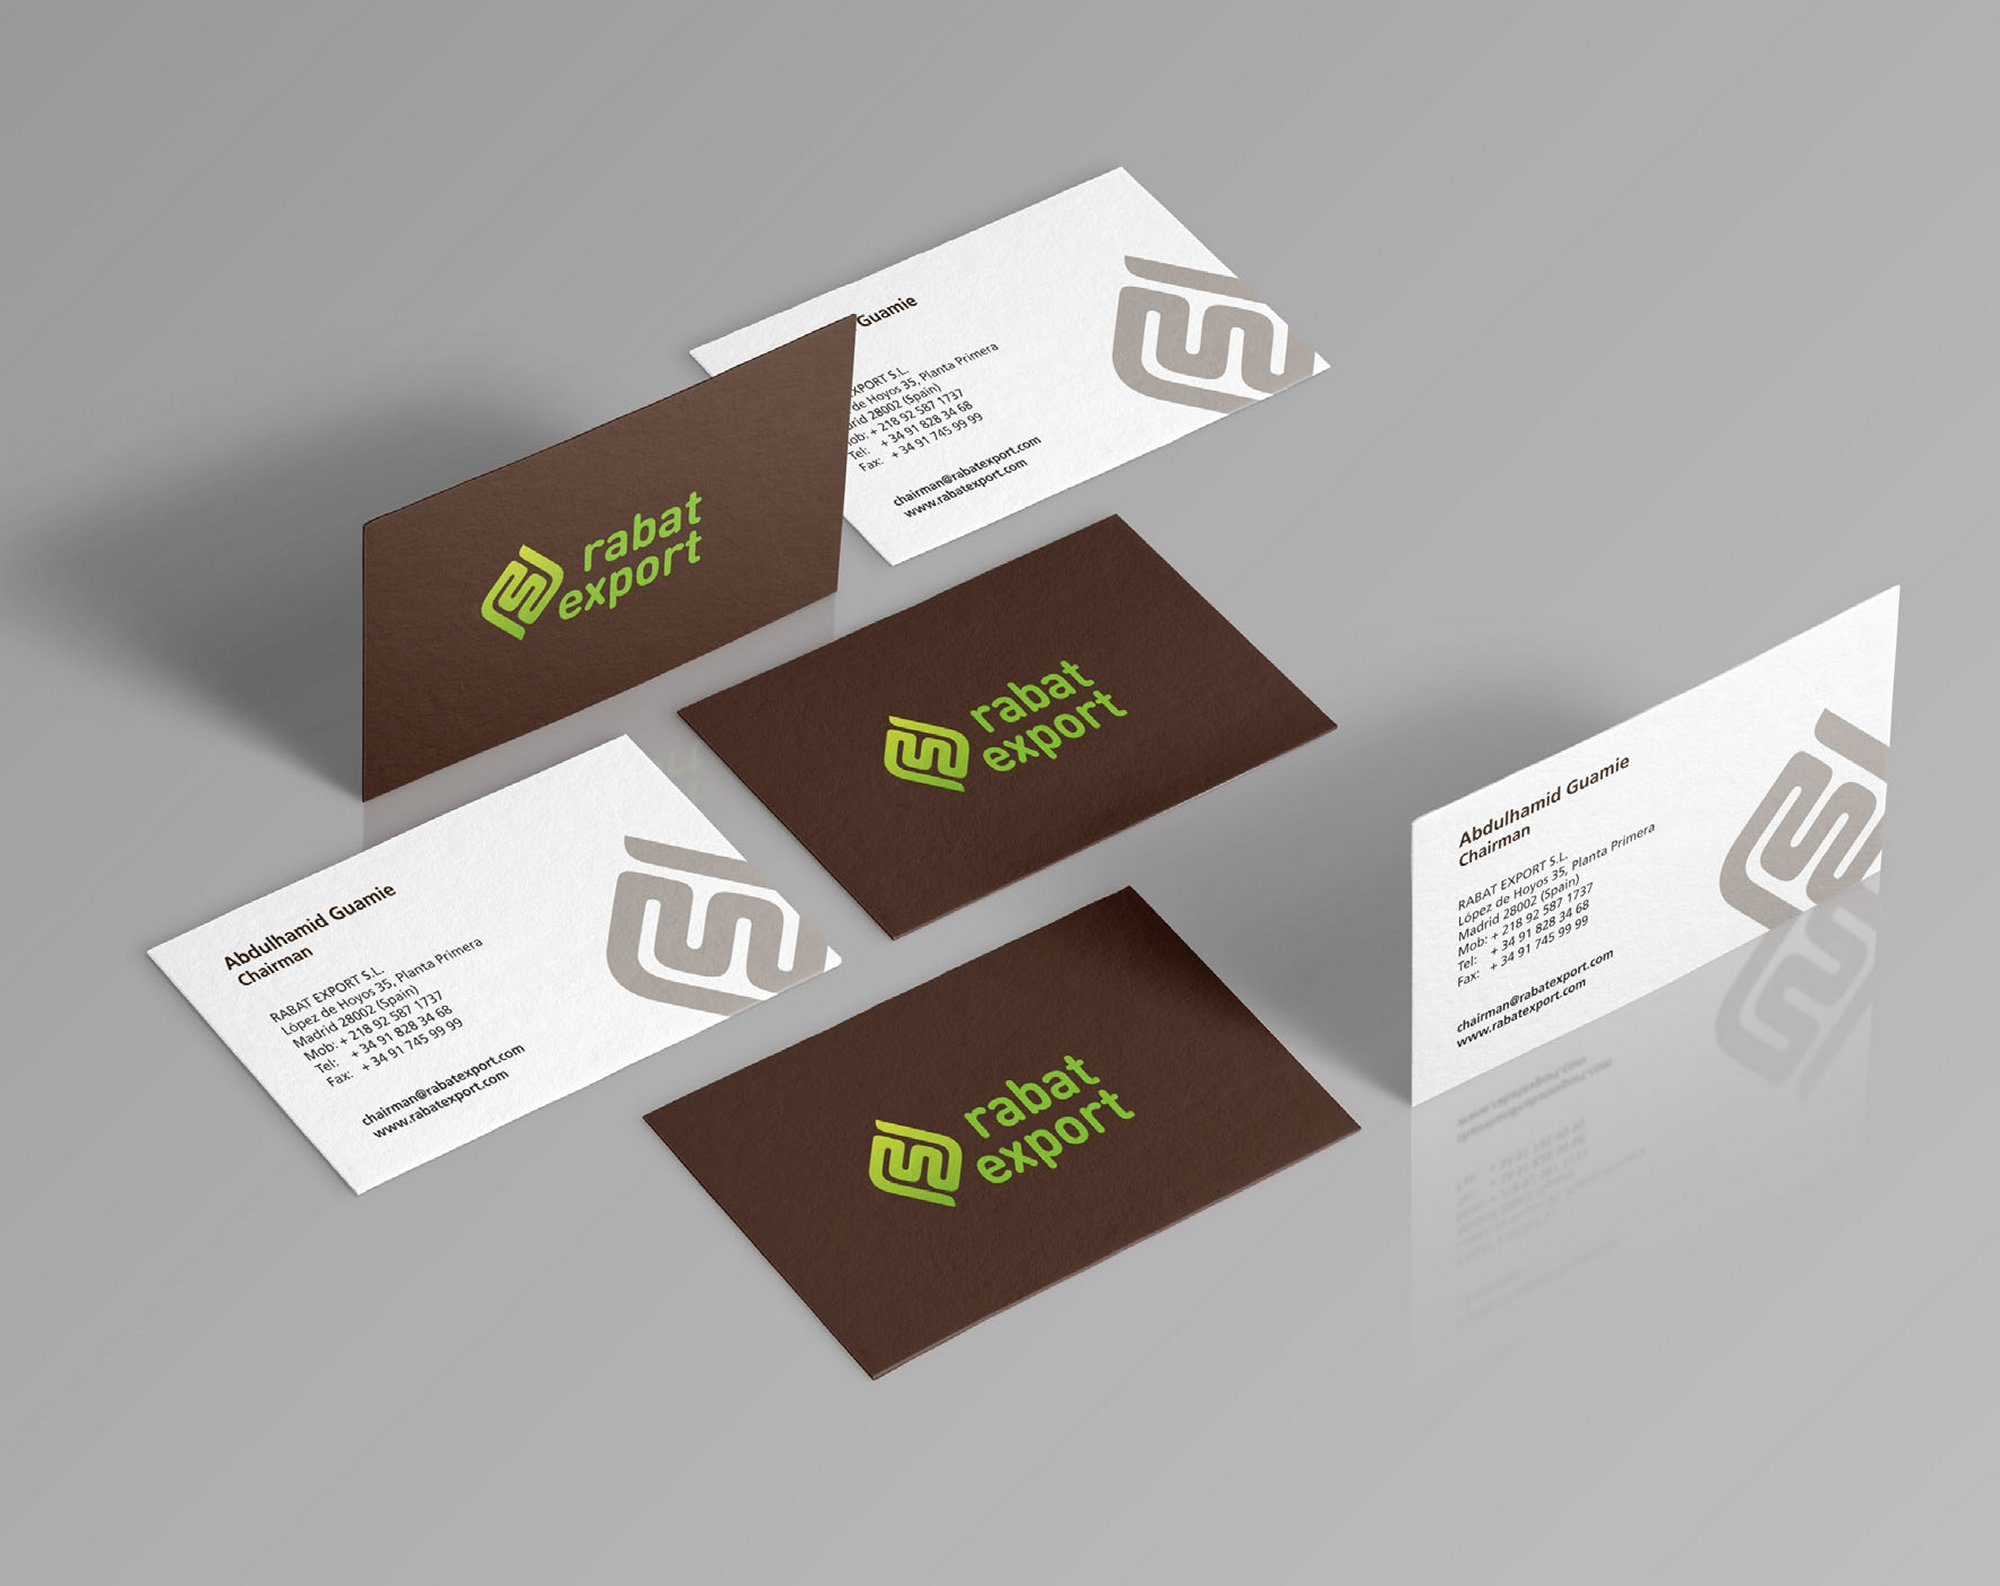 Rabat Export Business Card-Design